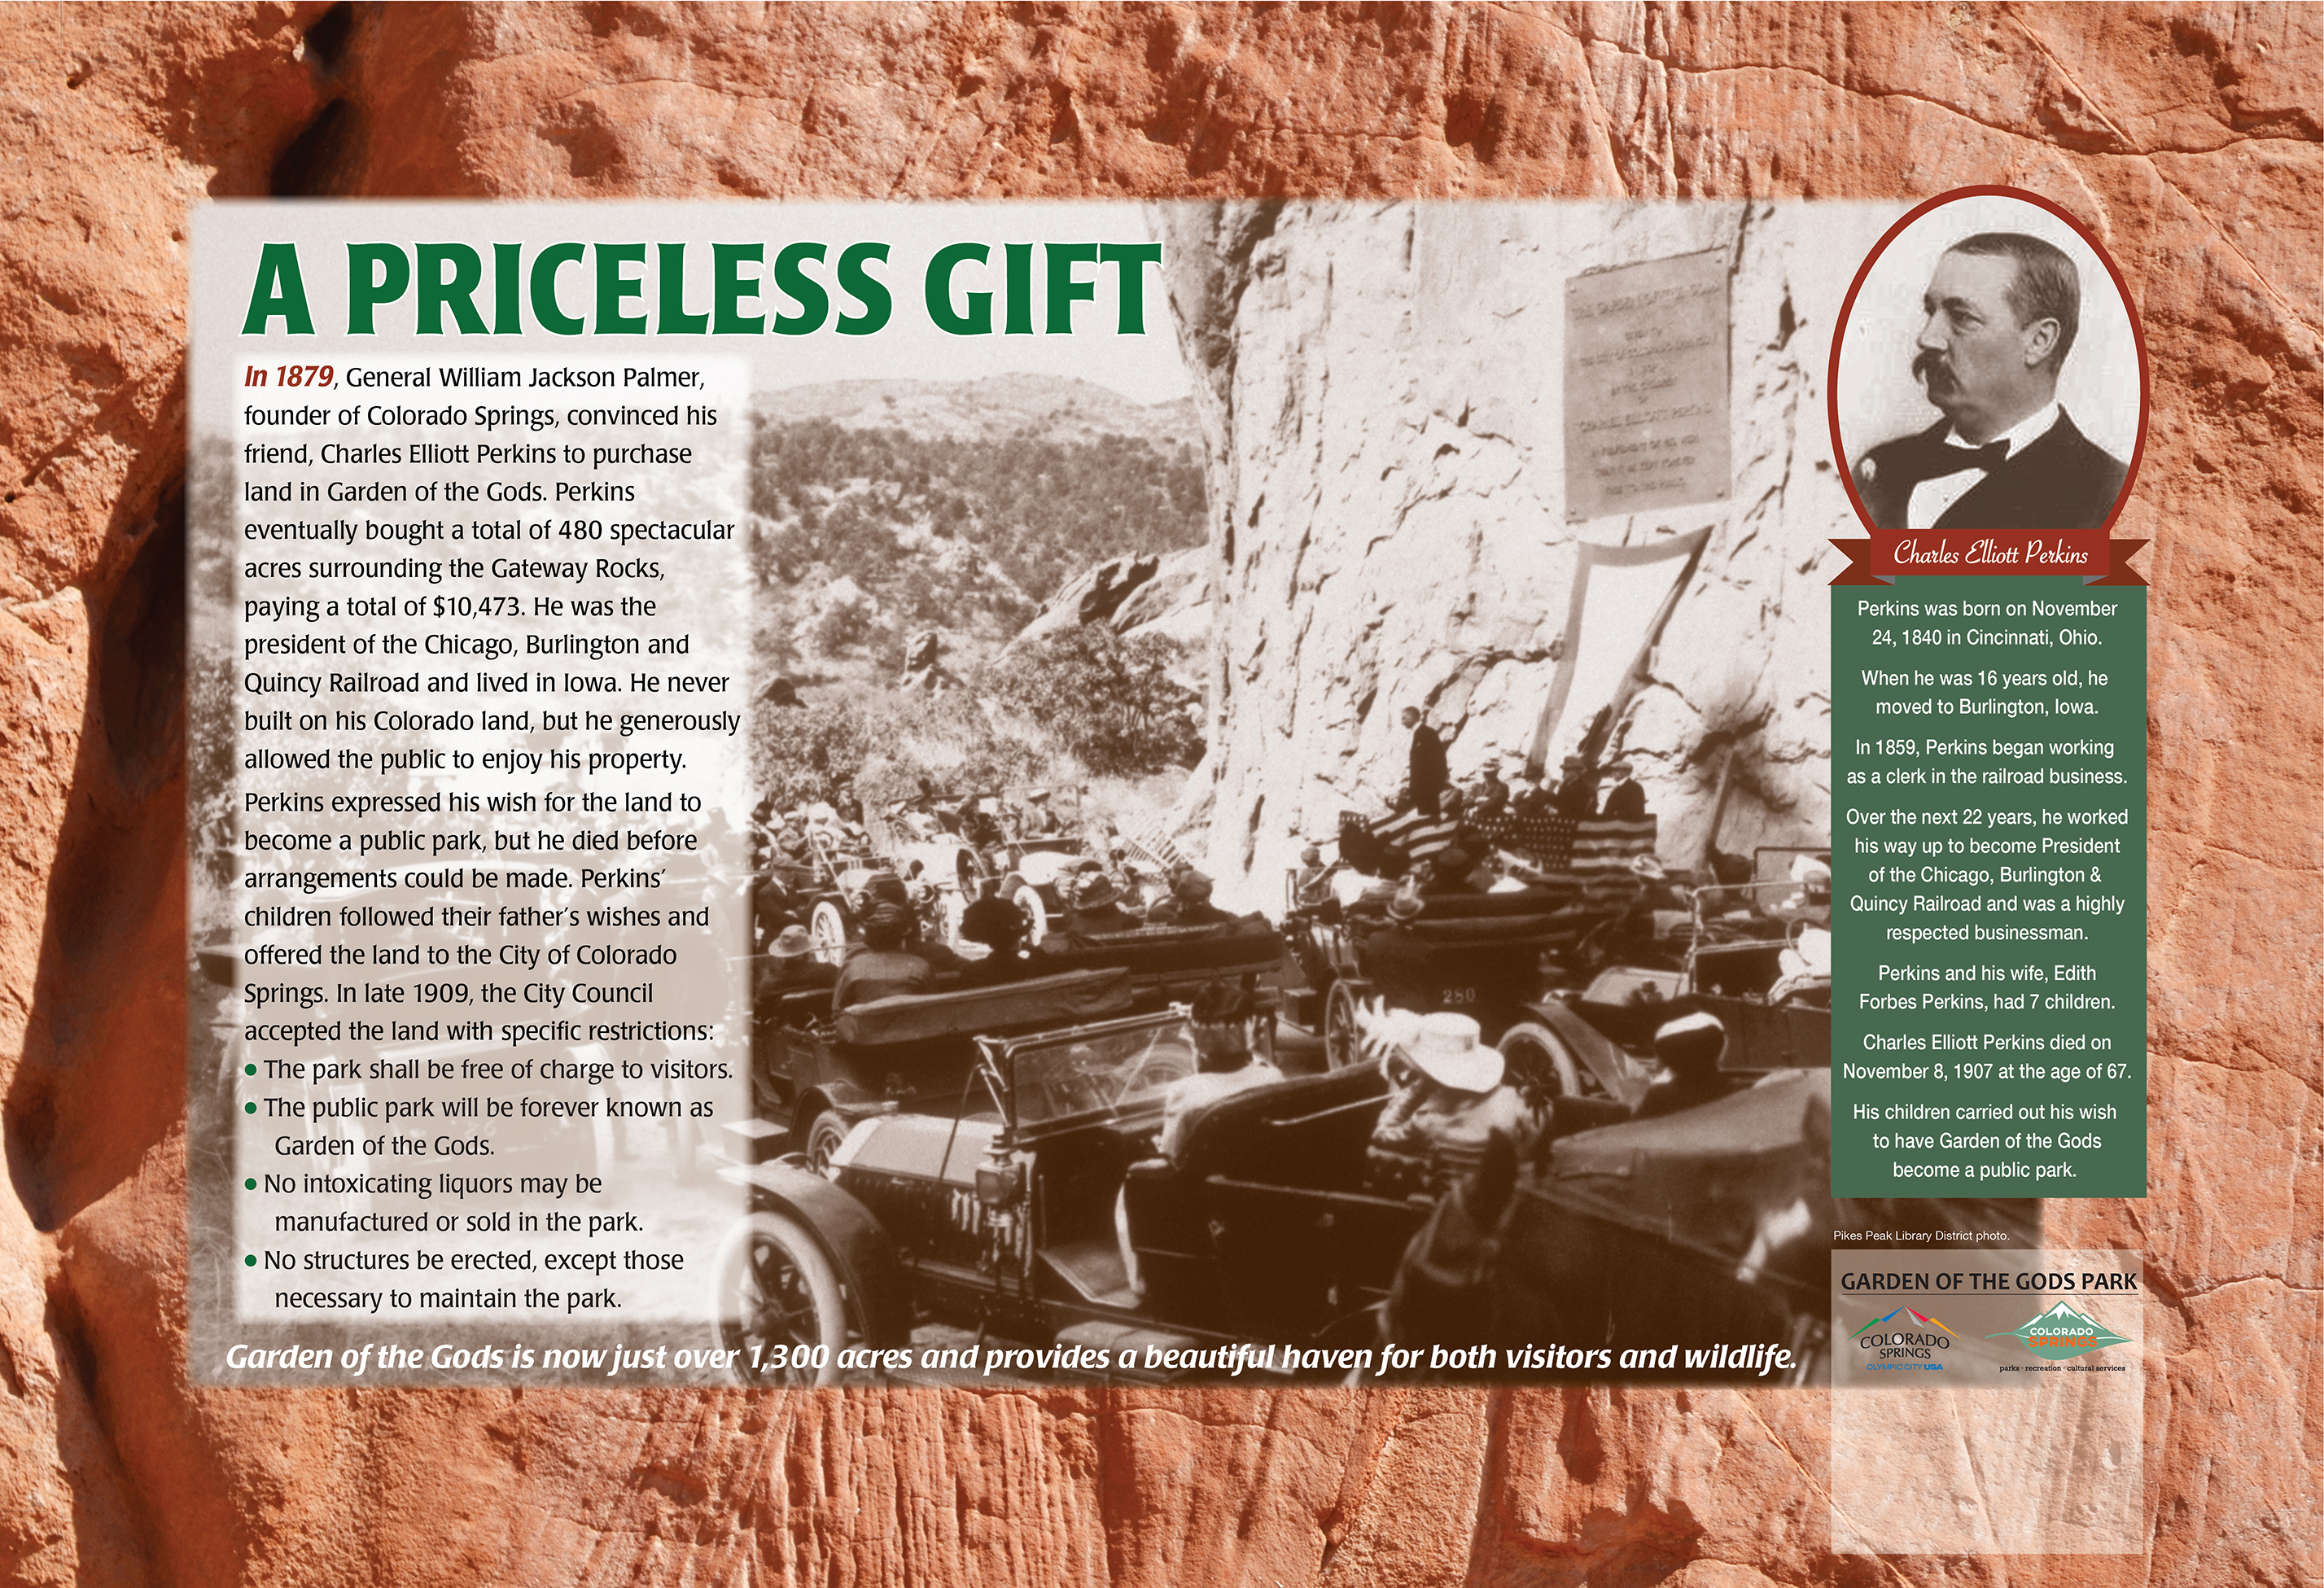 A Priceless Gift